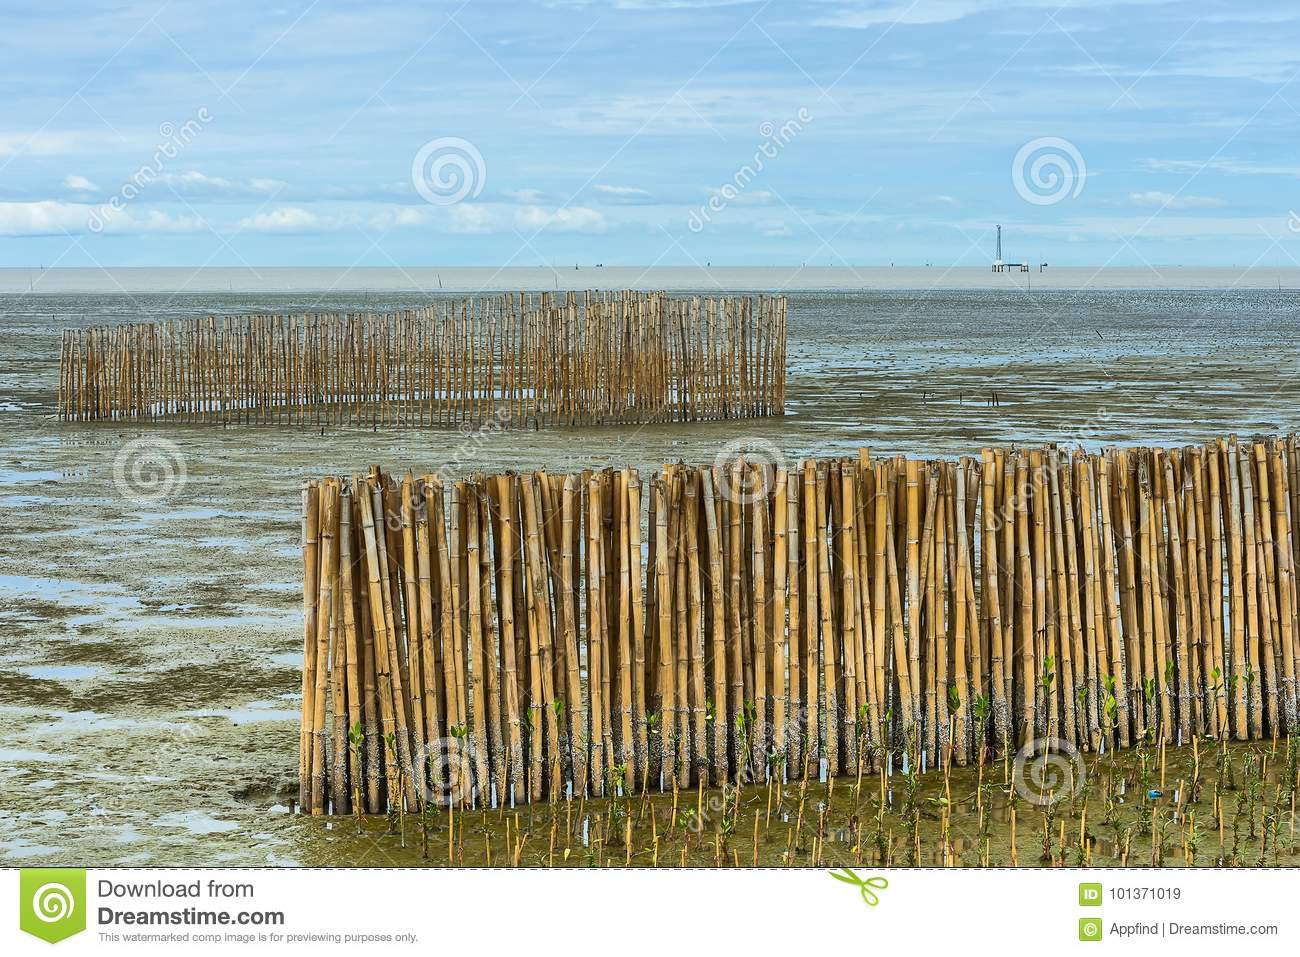 Bamboo barrier and rock dam.